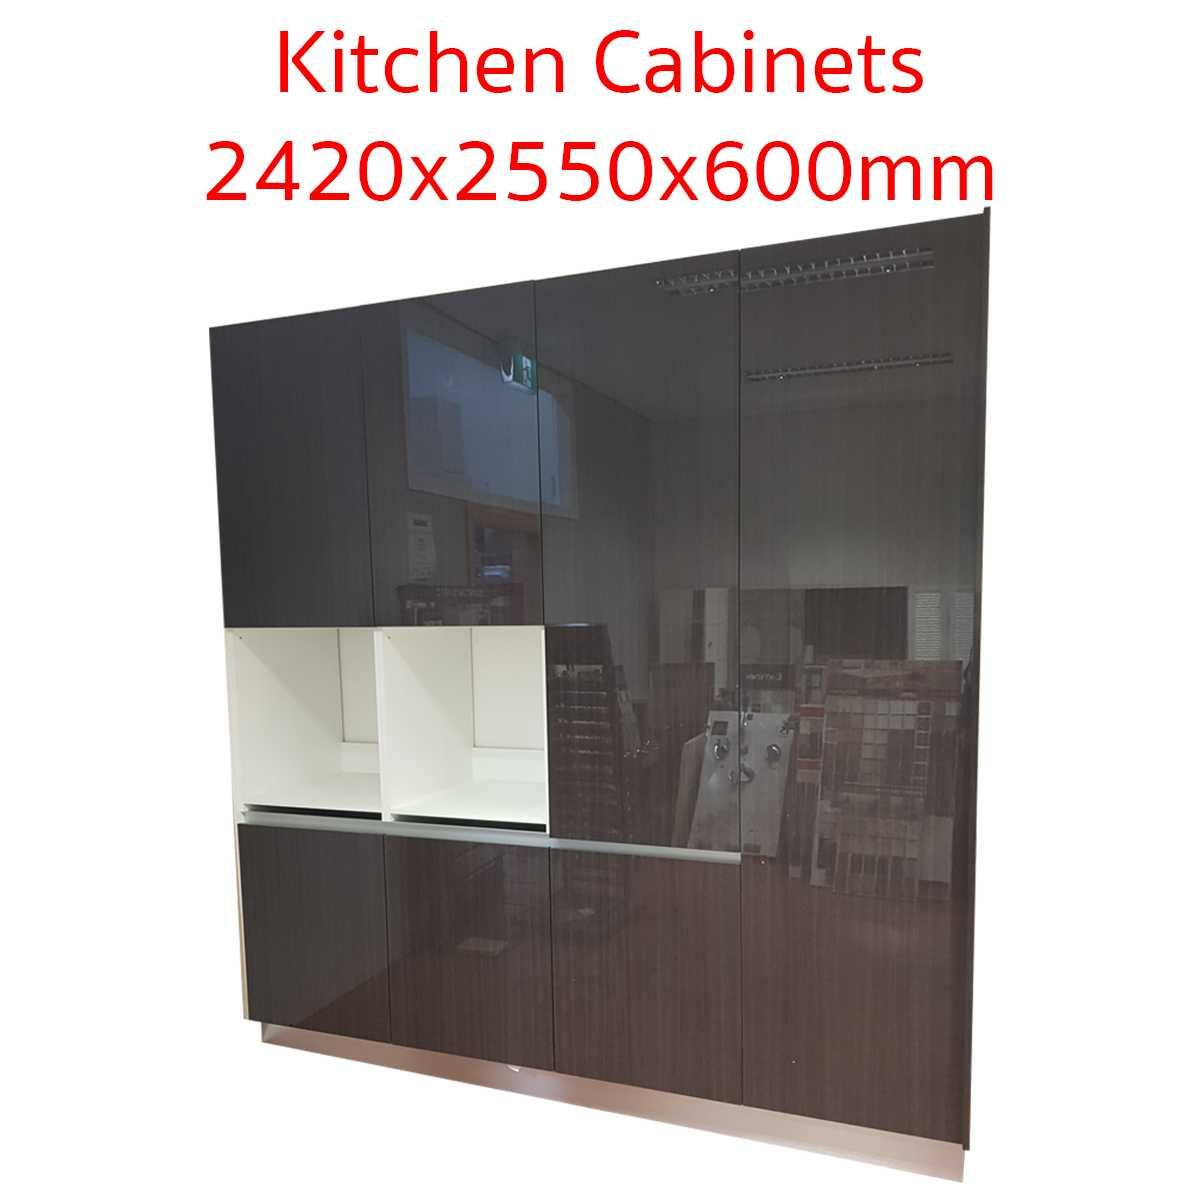 2420mm Tall Kitchen Cabinets with Pantry